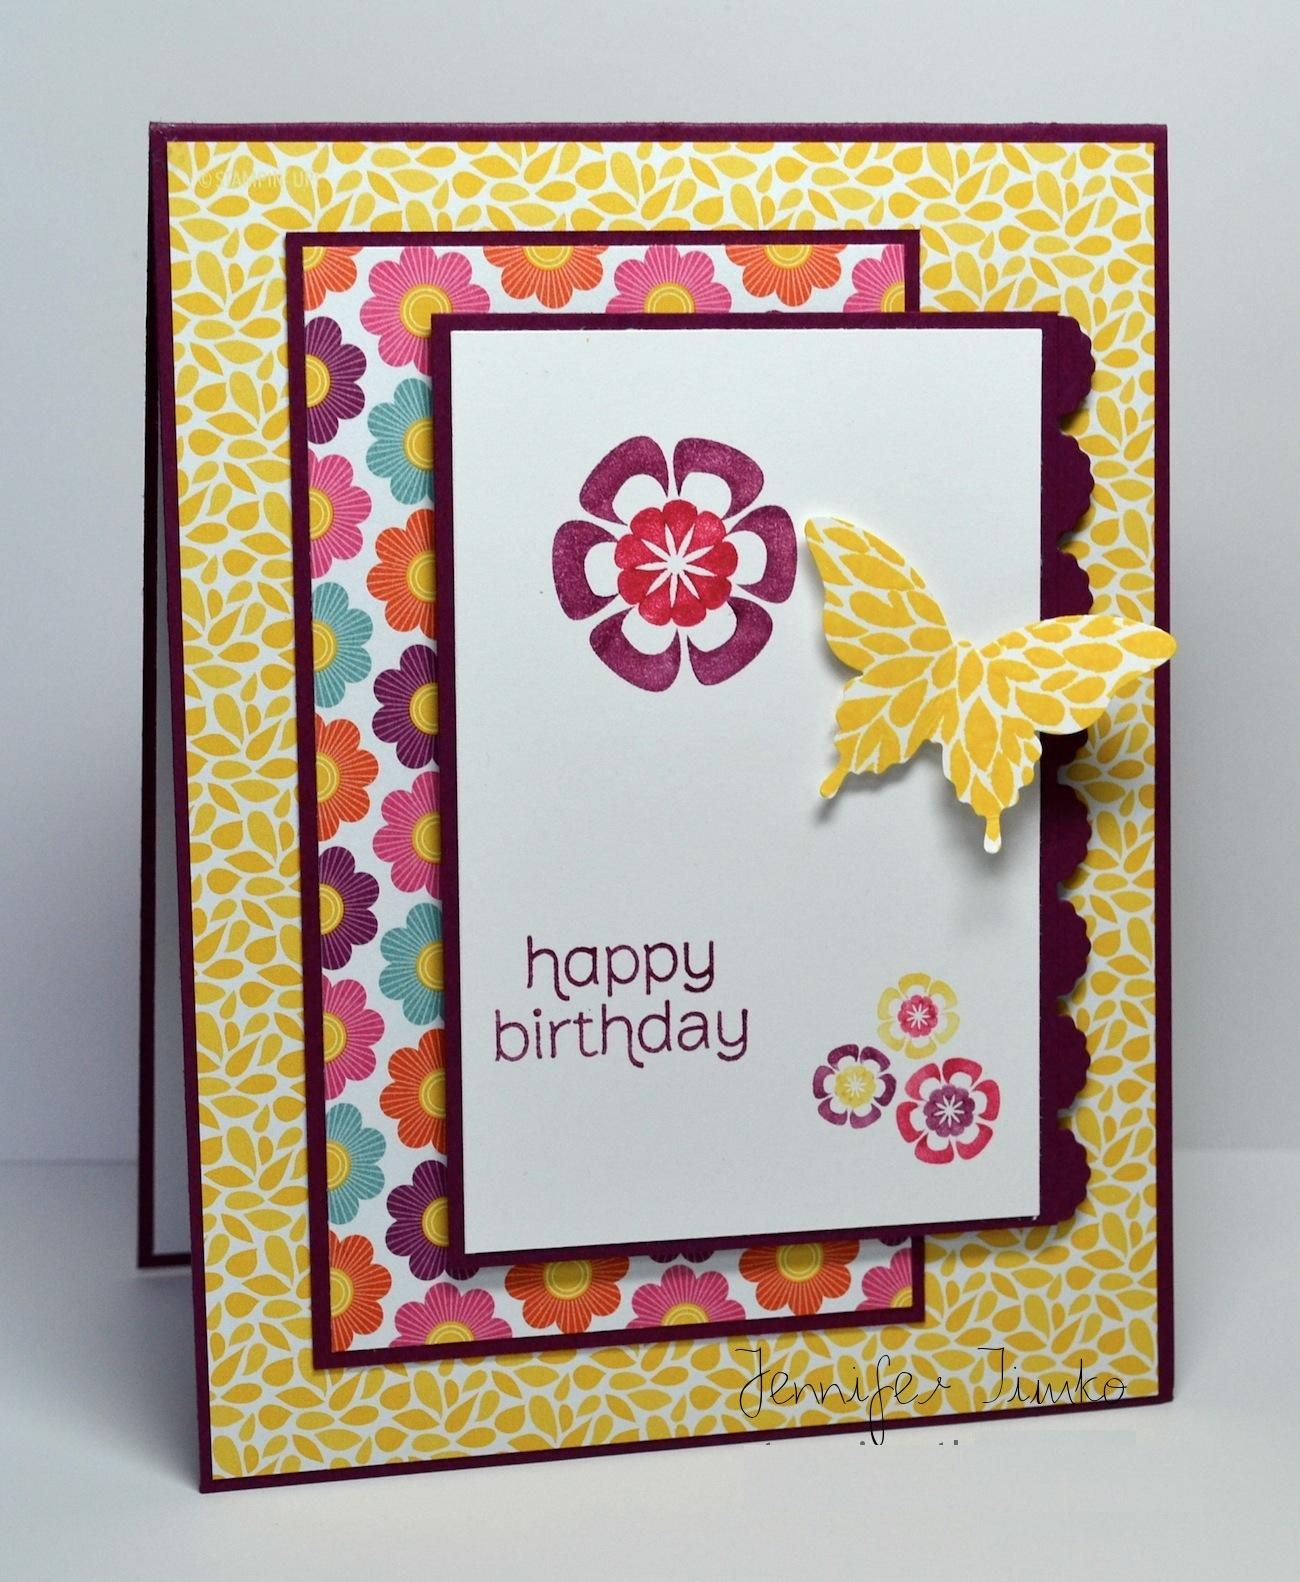 Beautiful Ideas For Making Birthday Cards For Friends Part - 13: Image Result For Birthday Greeting Card For Friend Handmade